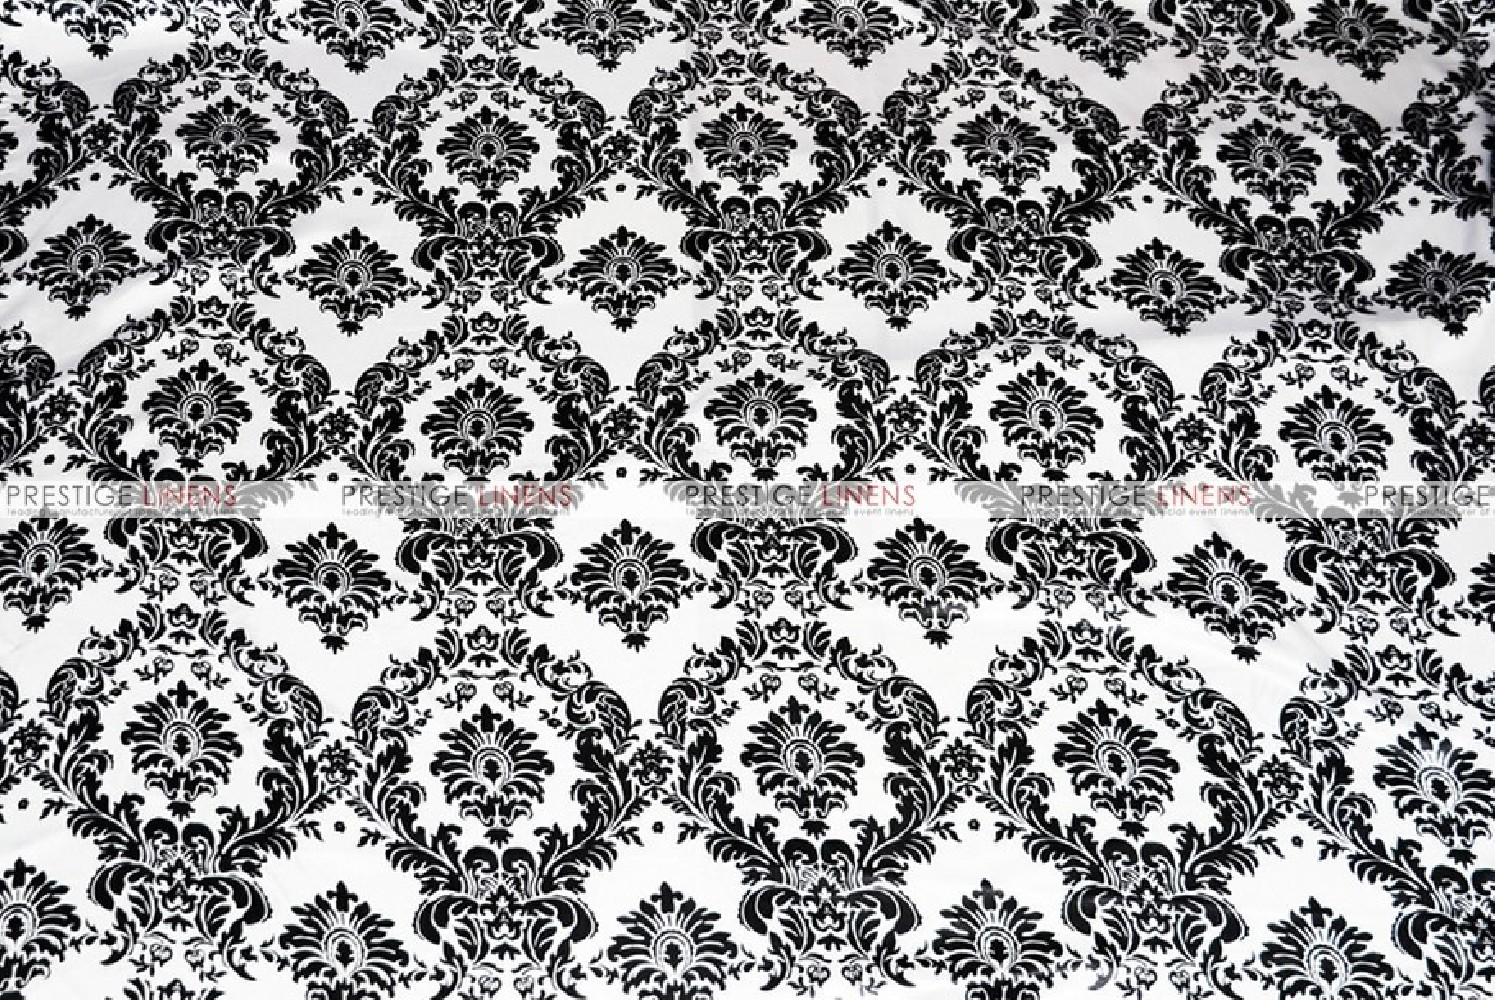 Damask Print Lamour Chair Cover White Black Prestige